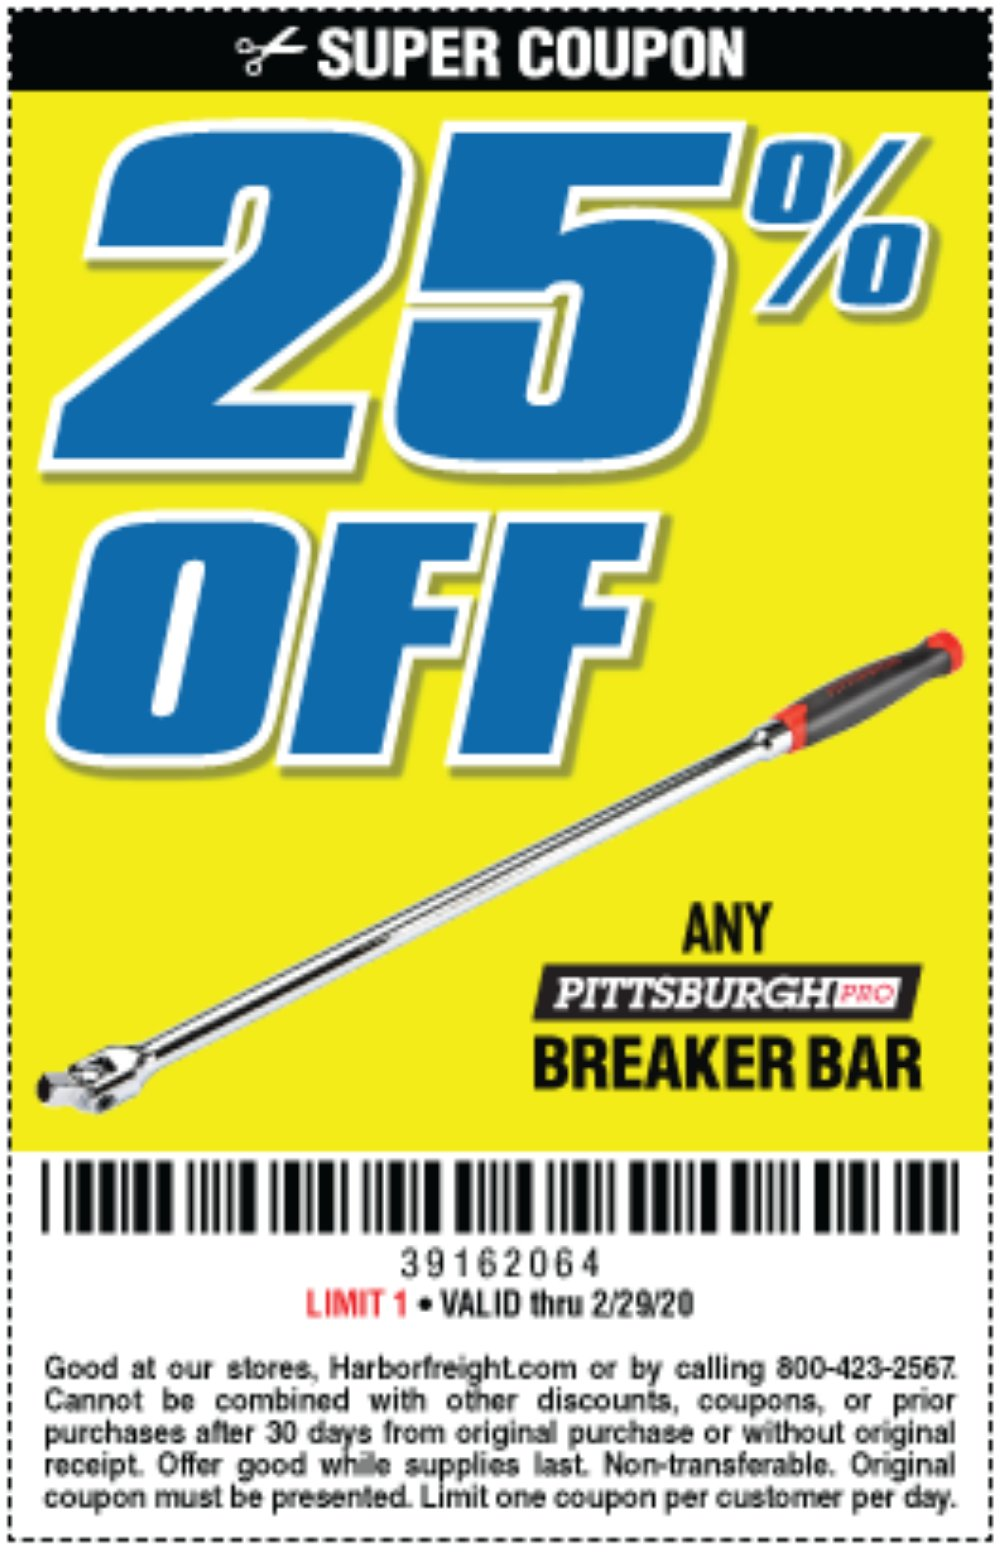 Harbor Freight Coupon, HF Coupons - 25% off any Pittsburgh breaker bar